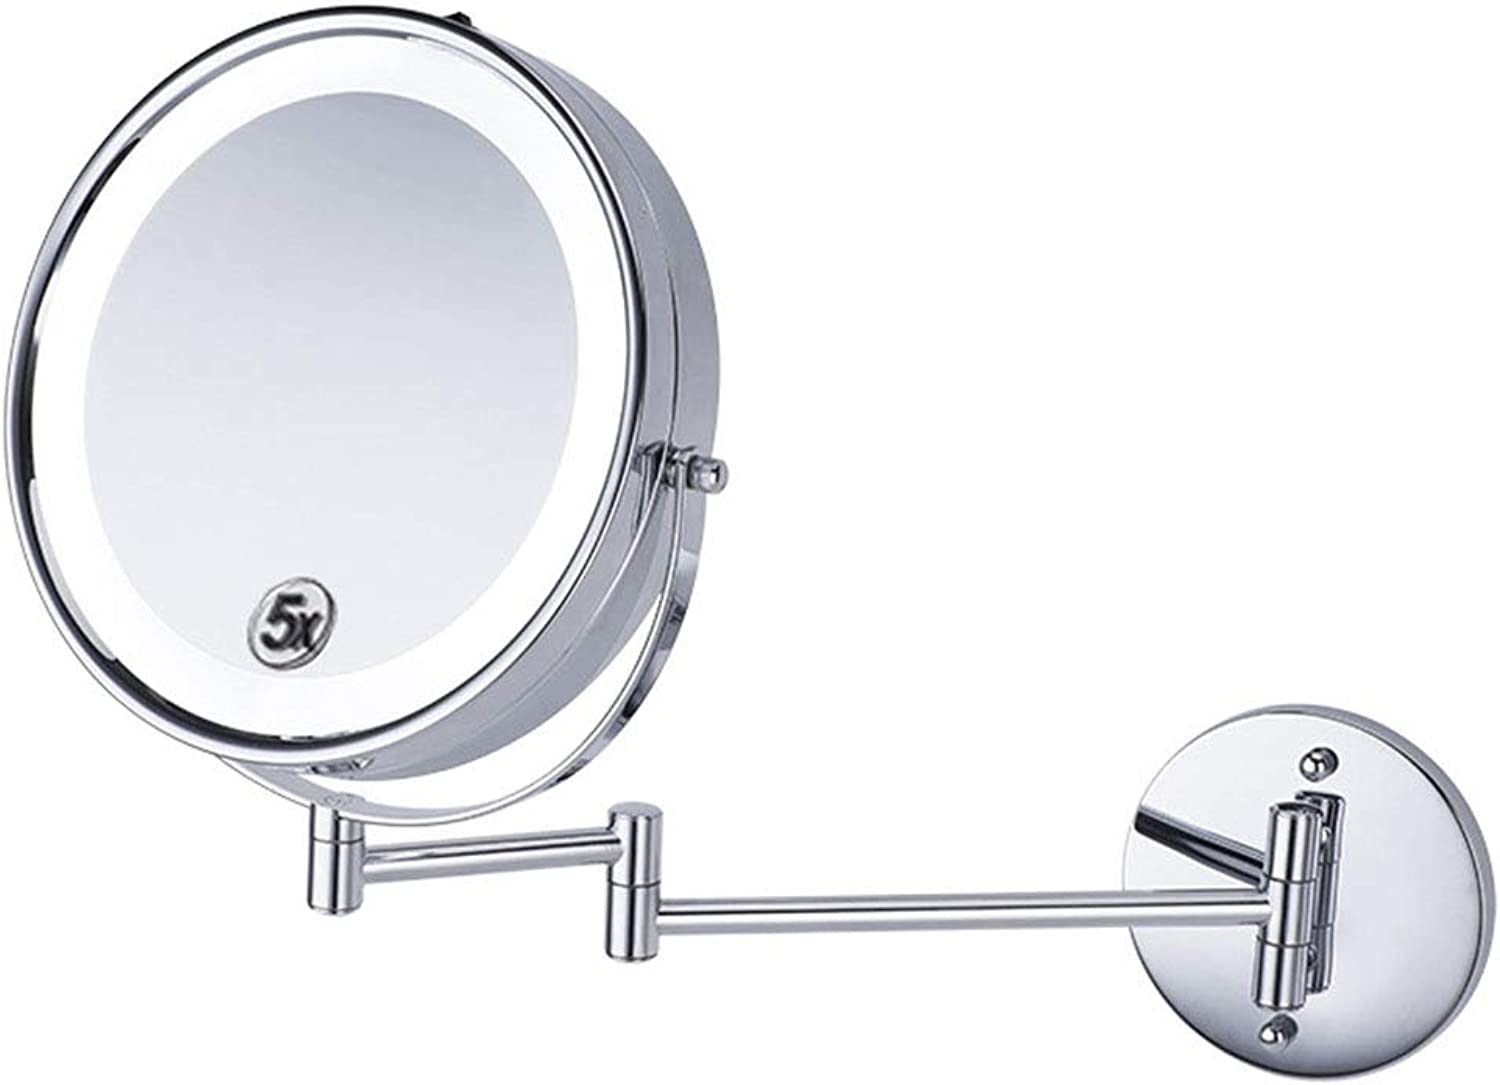 Countertop Vanity Mirrors Makeup Mirror Led with Light Bathroom Vanity Mirror Folding Beauty Wall Hanging Telescopic Bathroom Bathroom Mirror Magnifying Glass Beautiful Girl Must (color   Silver)